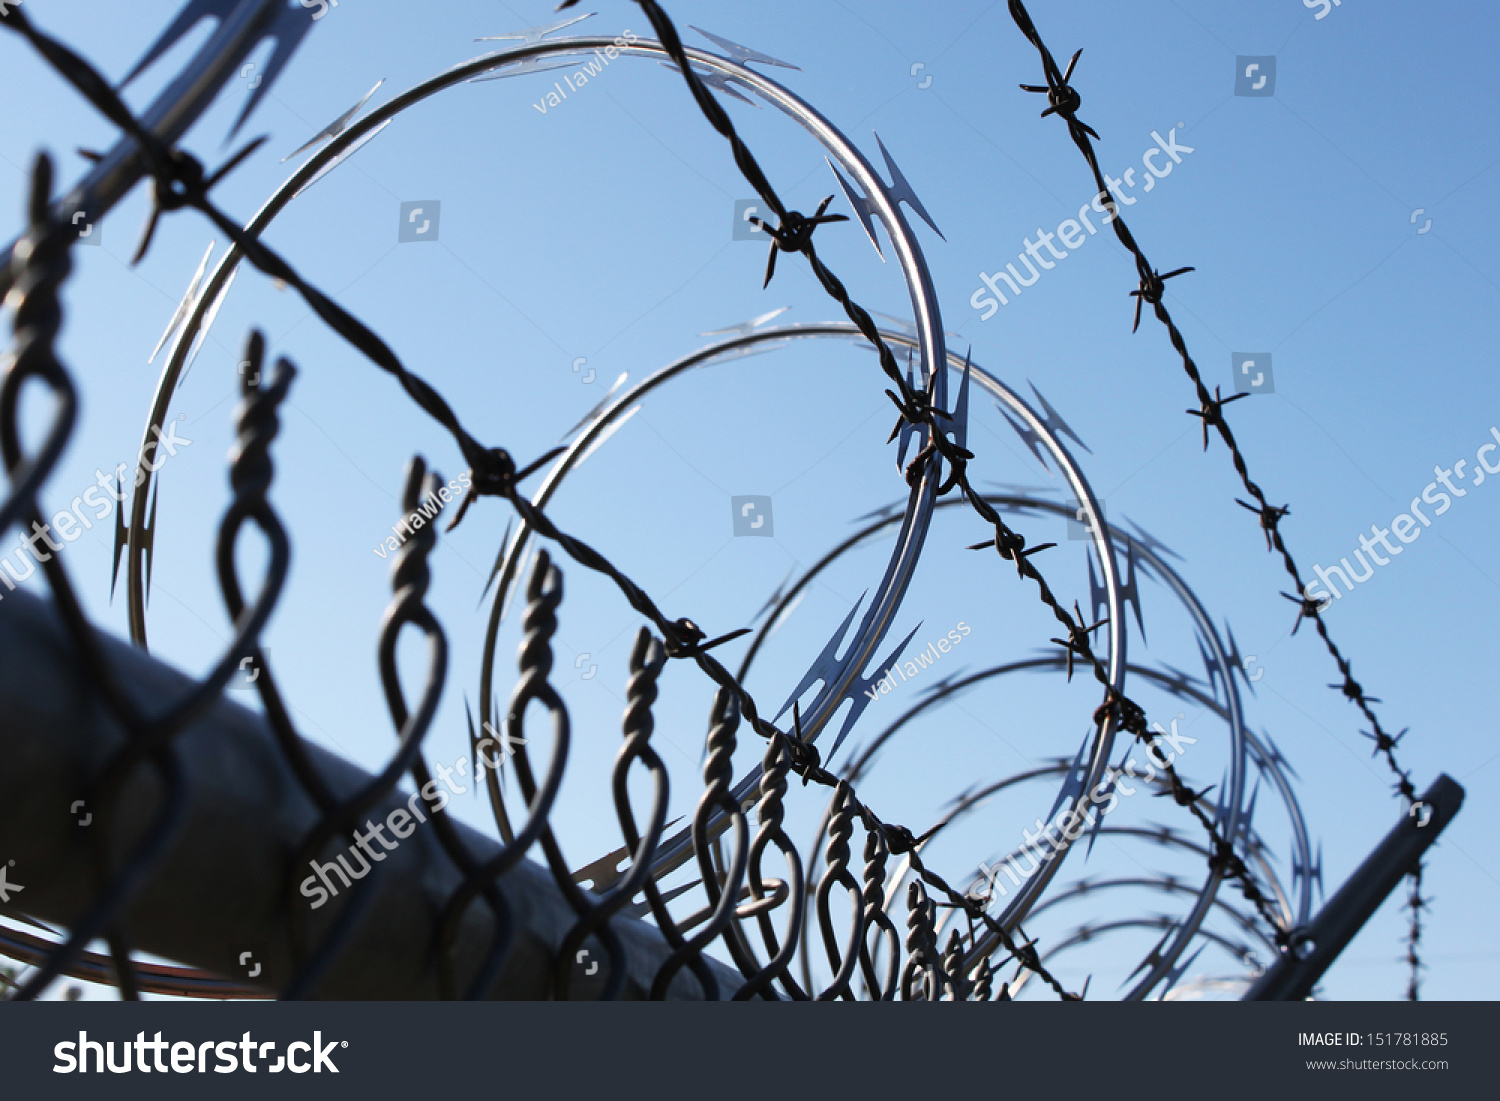 Barbwire Metal Fence Stock Photo (Safe to Use) 151781885 - Shutterstock